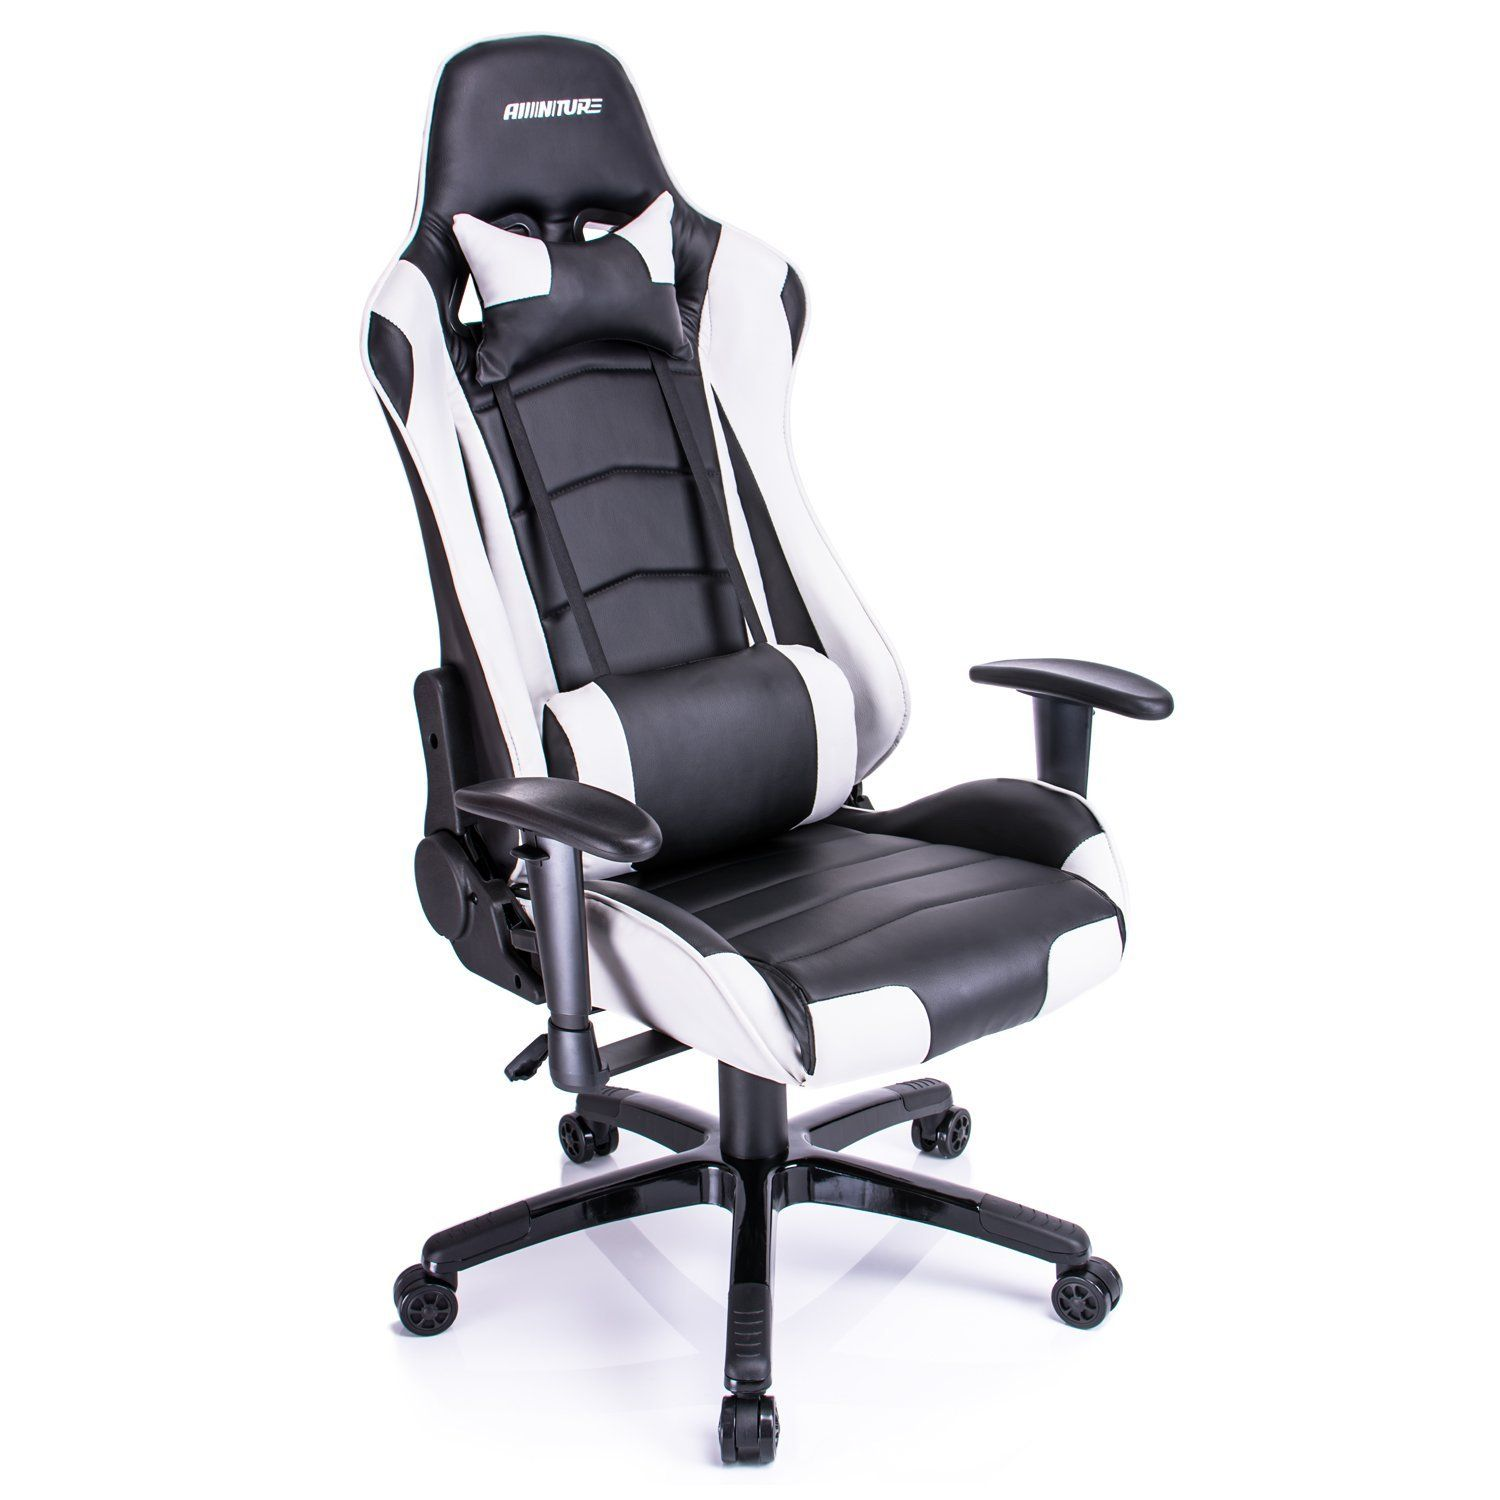 Ultimate Computer Chair Amazon Aminitrue Highback Gaming Chair Racing Style